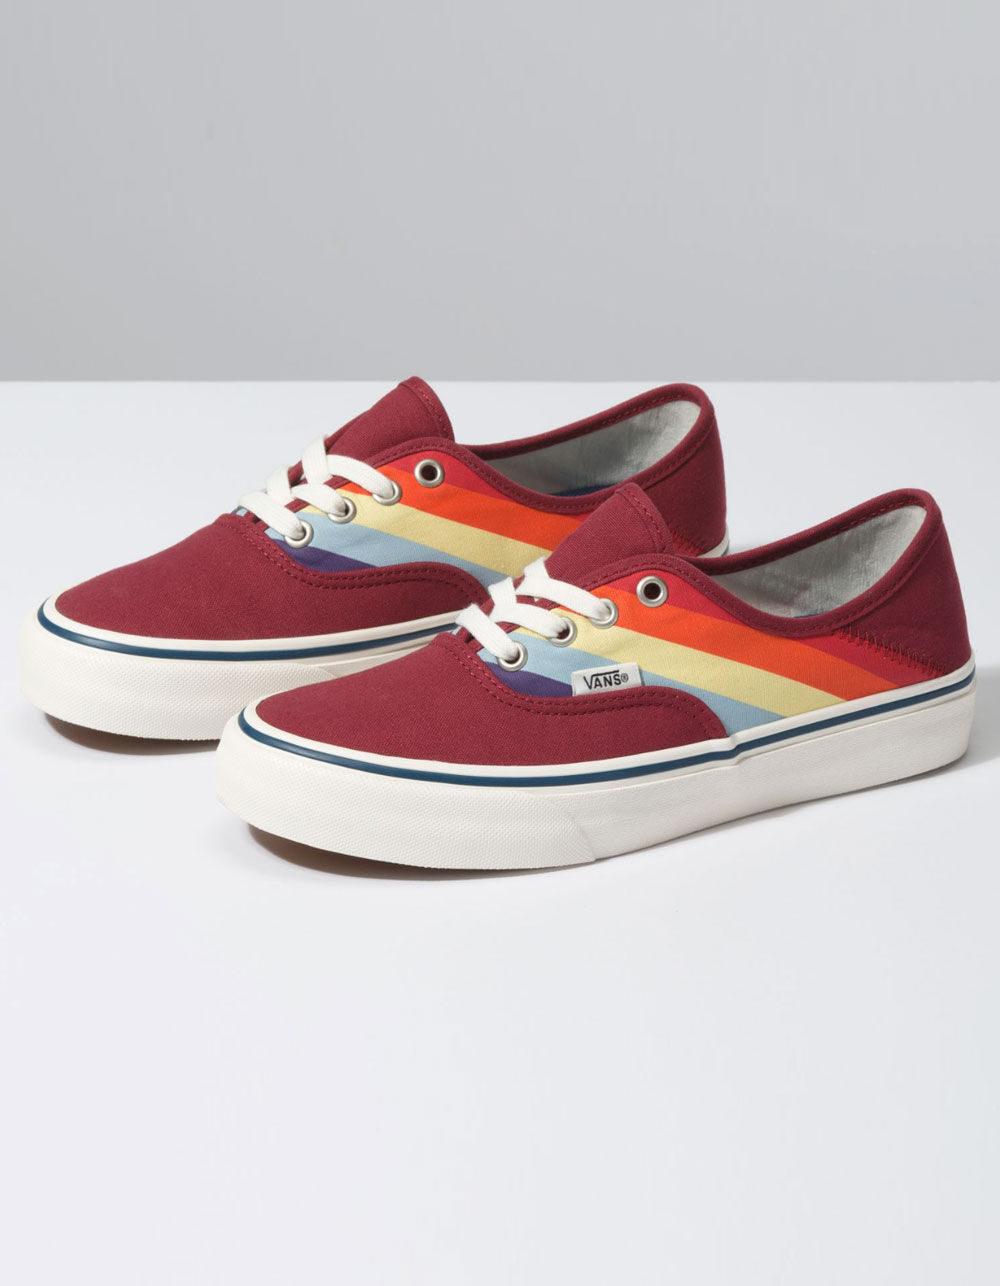 VANS Rad Rainbow Authentic SF Biking Red & Marshmallow Shoes